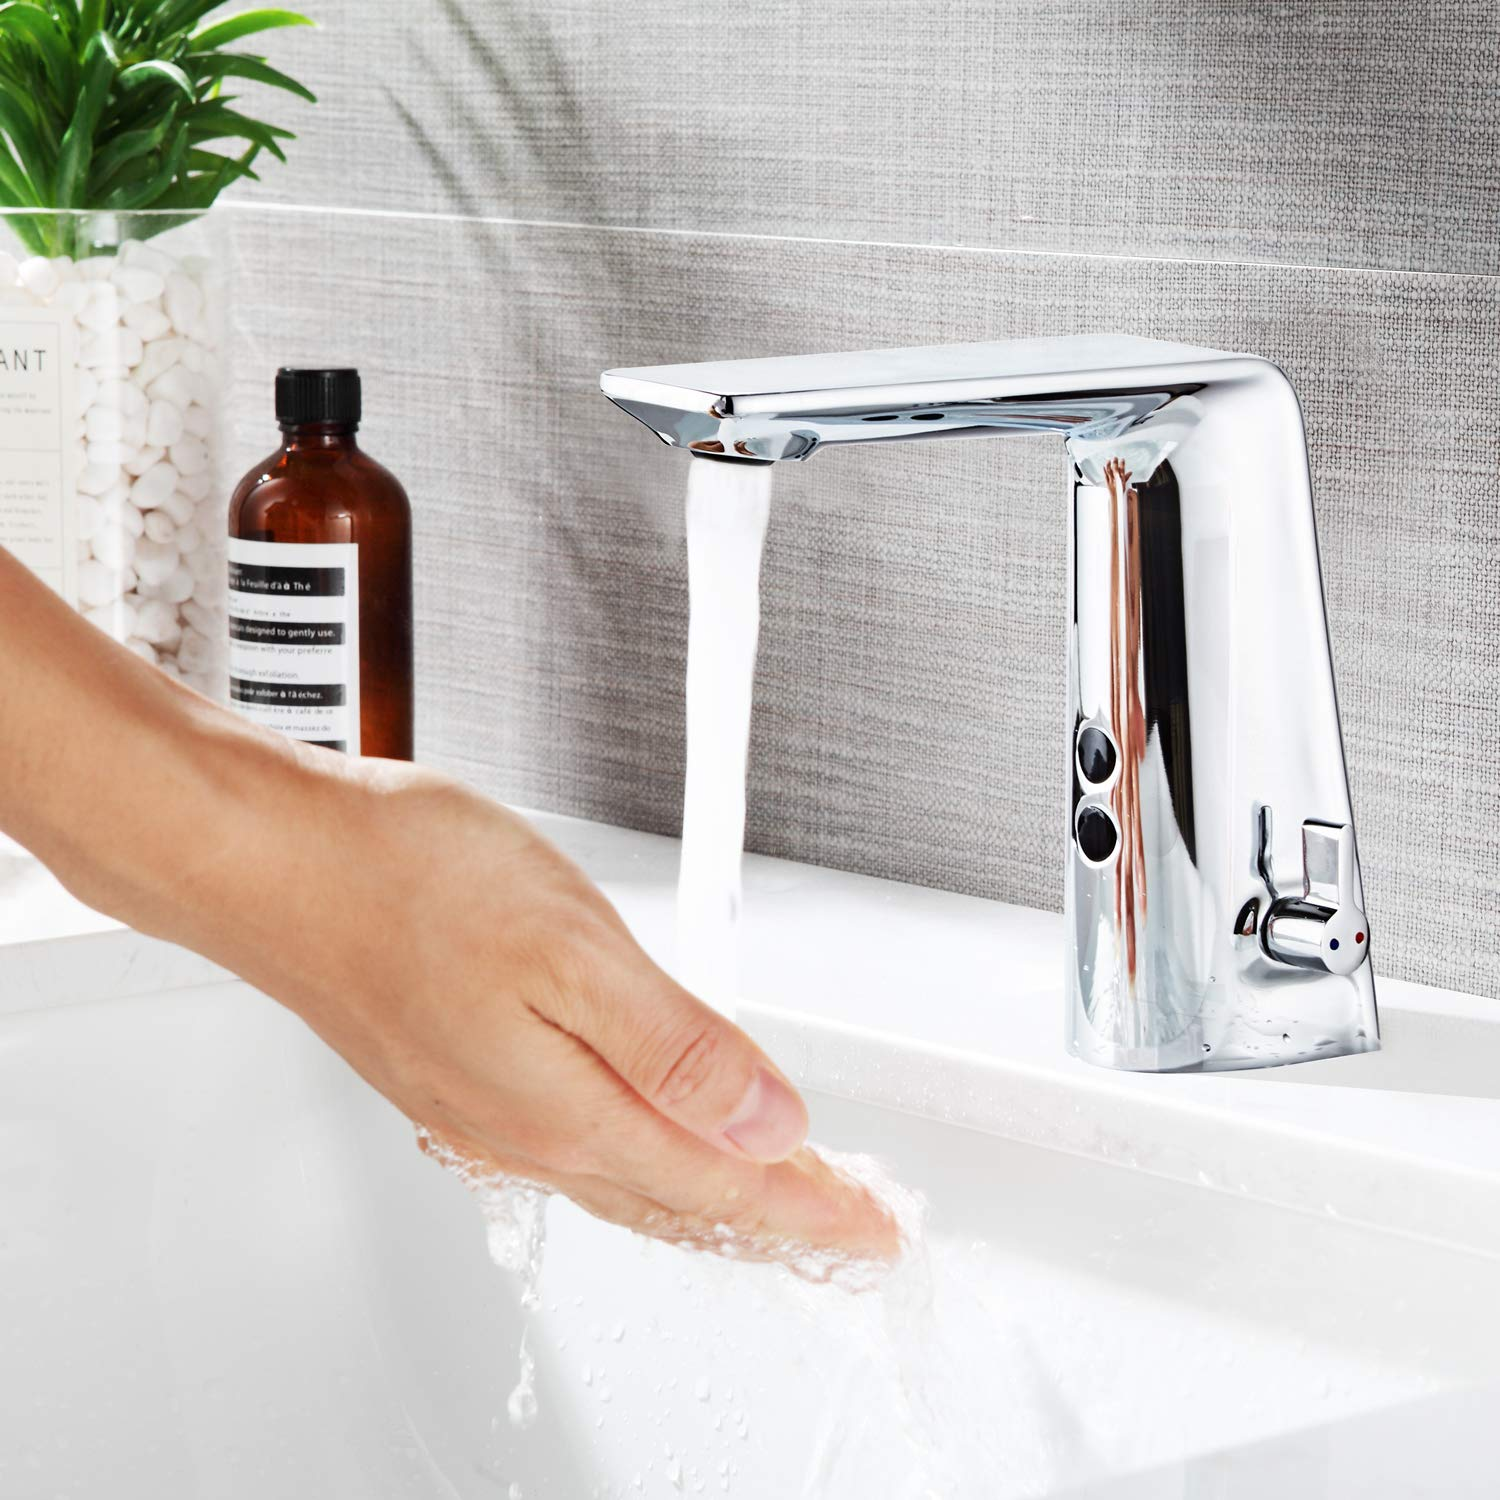 Automatic Sensor Motion Faucet Touchless Bathroom faucet Motion Activated Sink Tap Electronic Hands Free Vessel Sink Faucet with Dual Sensor Module, Temperature Valve,Adjustable Knob, Chrome Polished by Halo Sanitary